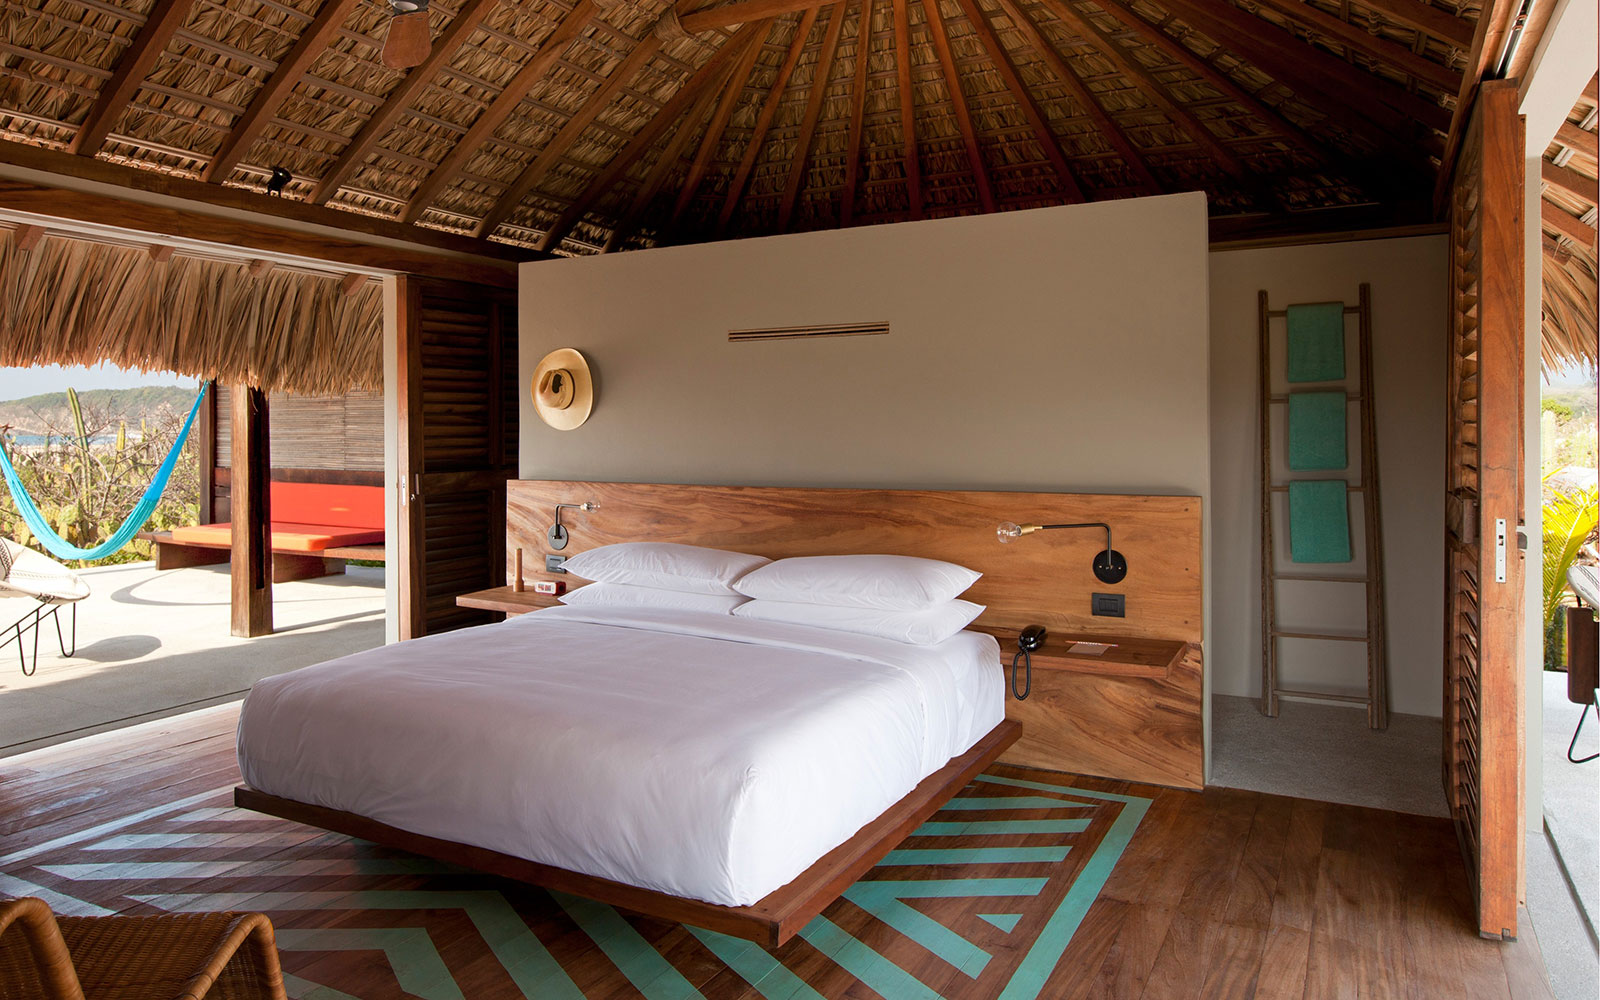 Mexico's Greenest Hotels Offer Guests a Certain 'Om'-biance: Hotel Escondido in Puerto Escondido, Oaxaca